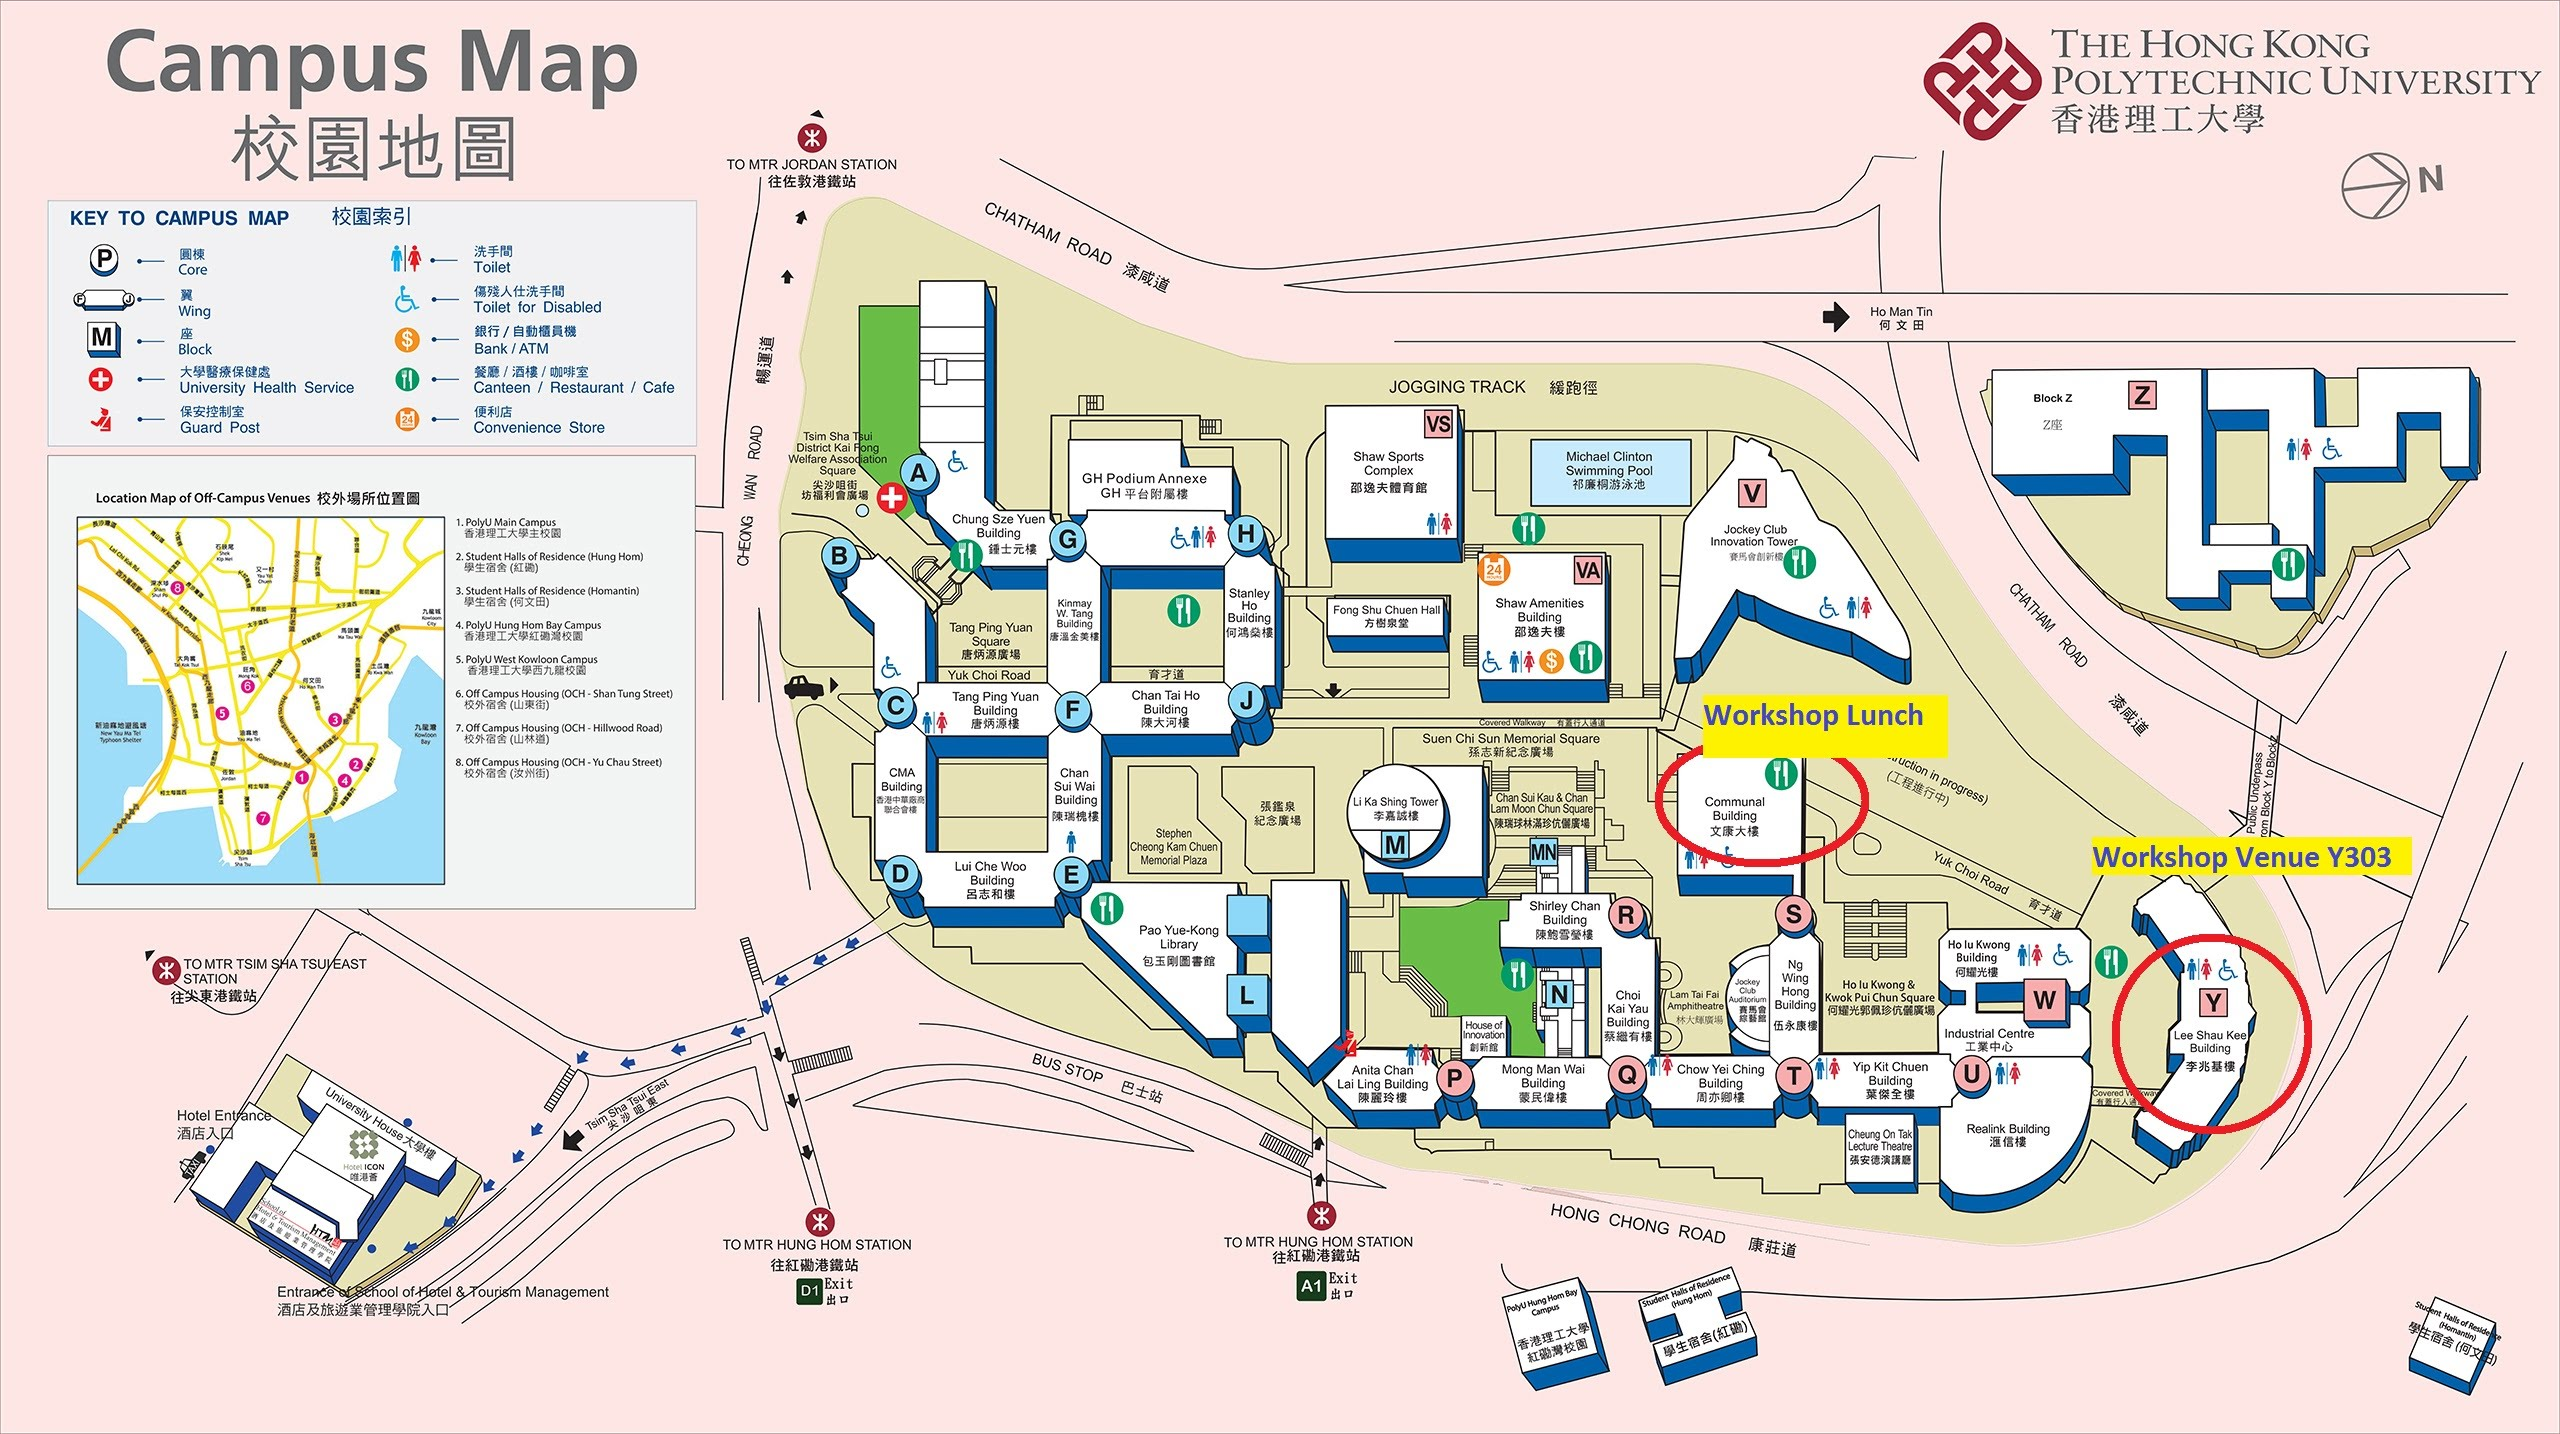 Lmc Pittsburg Campus Map.Google Campus Map Alexander The Great Empire Map